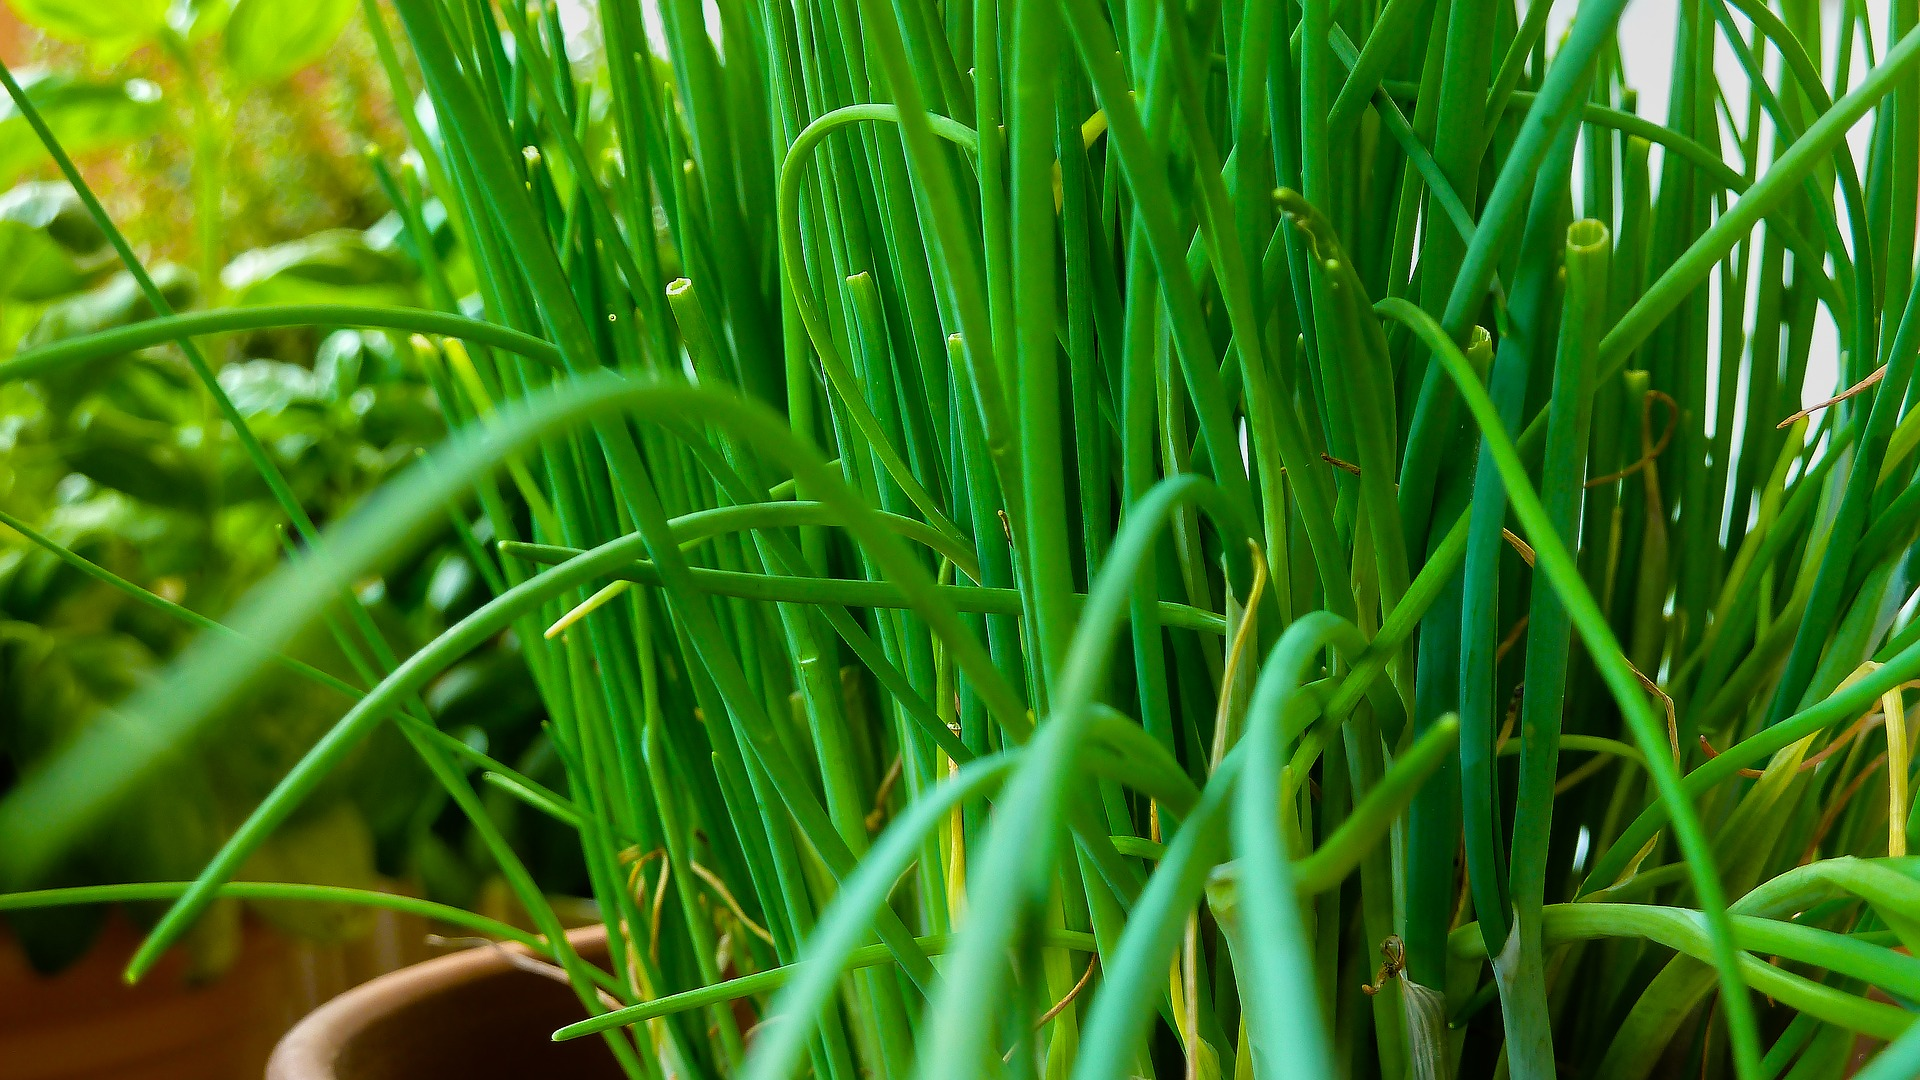 Image: How to grow a fresh supply of chives